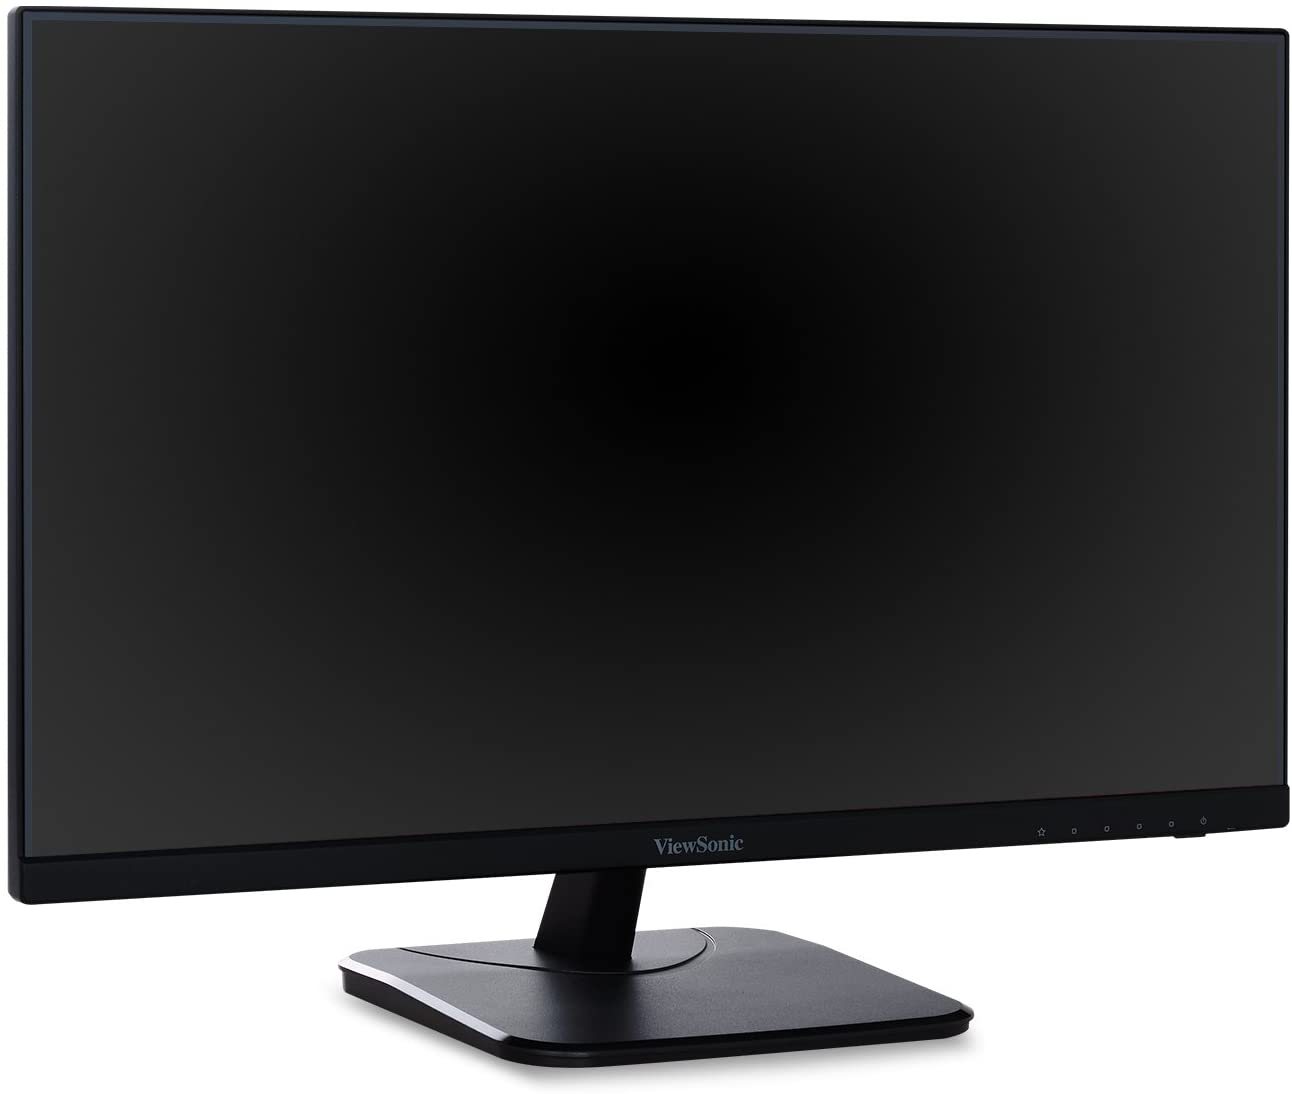 ViewSonic VA2456-MHD 24 Inch Frameless IPS 1080p Monitor with HDMI DisplayPort and VGA Inputs for Home and Office